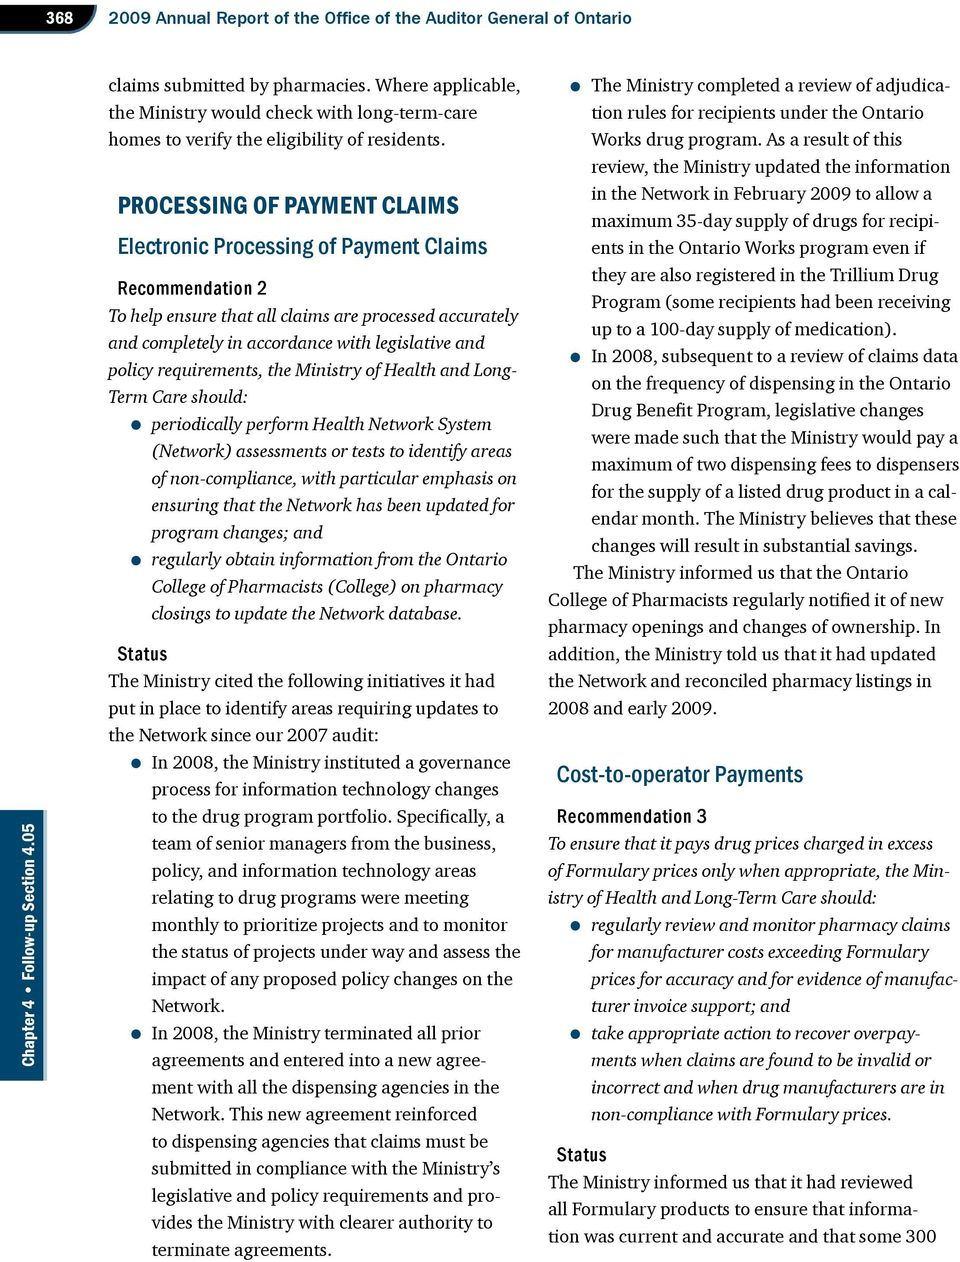 Processing of Payment Claims Electronic Processing of Payment Claims Recommendation 2 To help ensure that all claims are processed accurately and completely in accordance with legislative and policy